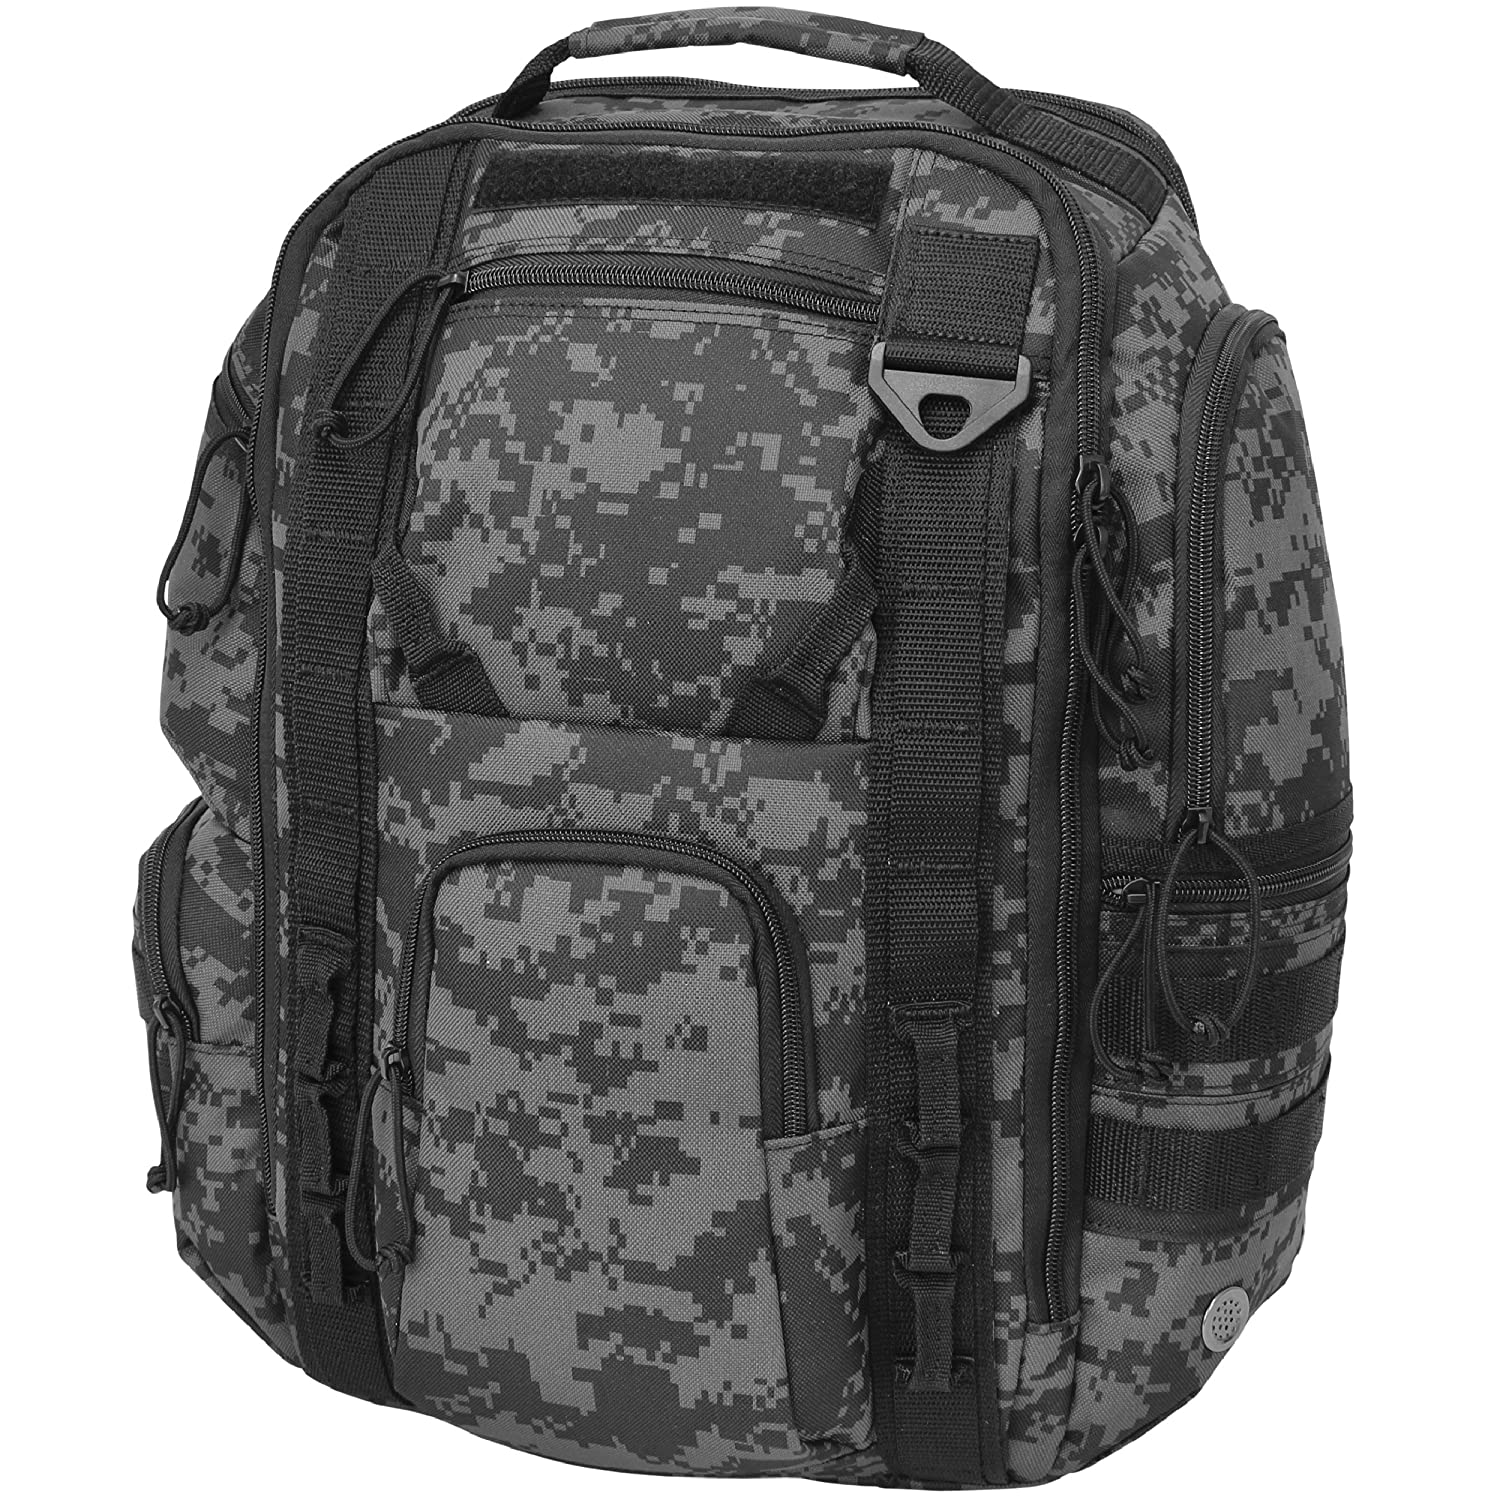 80%OFF Mercury Rogue Travel Backpack, Black Camo, One Size